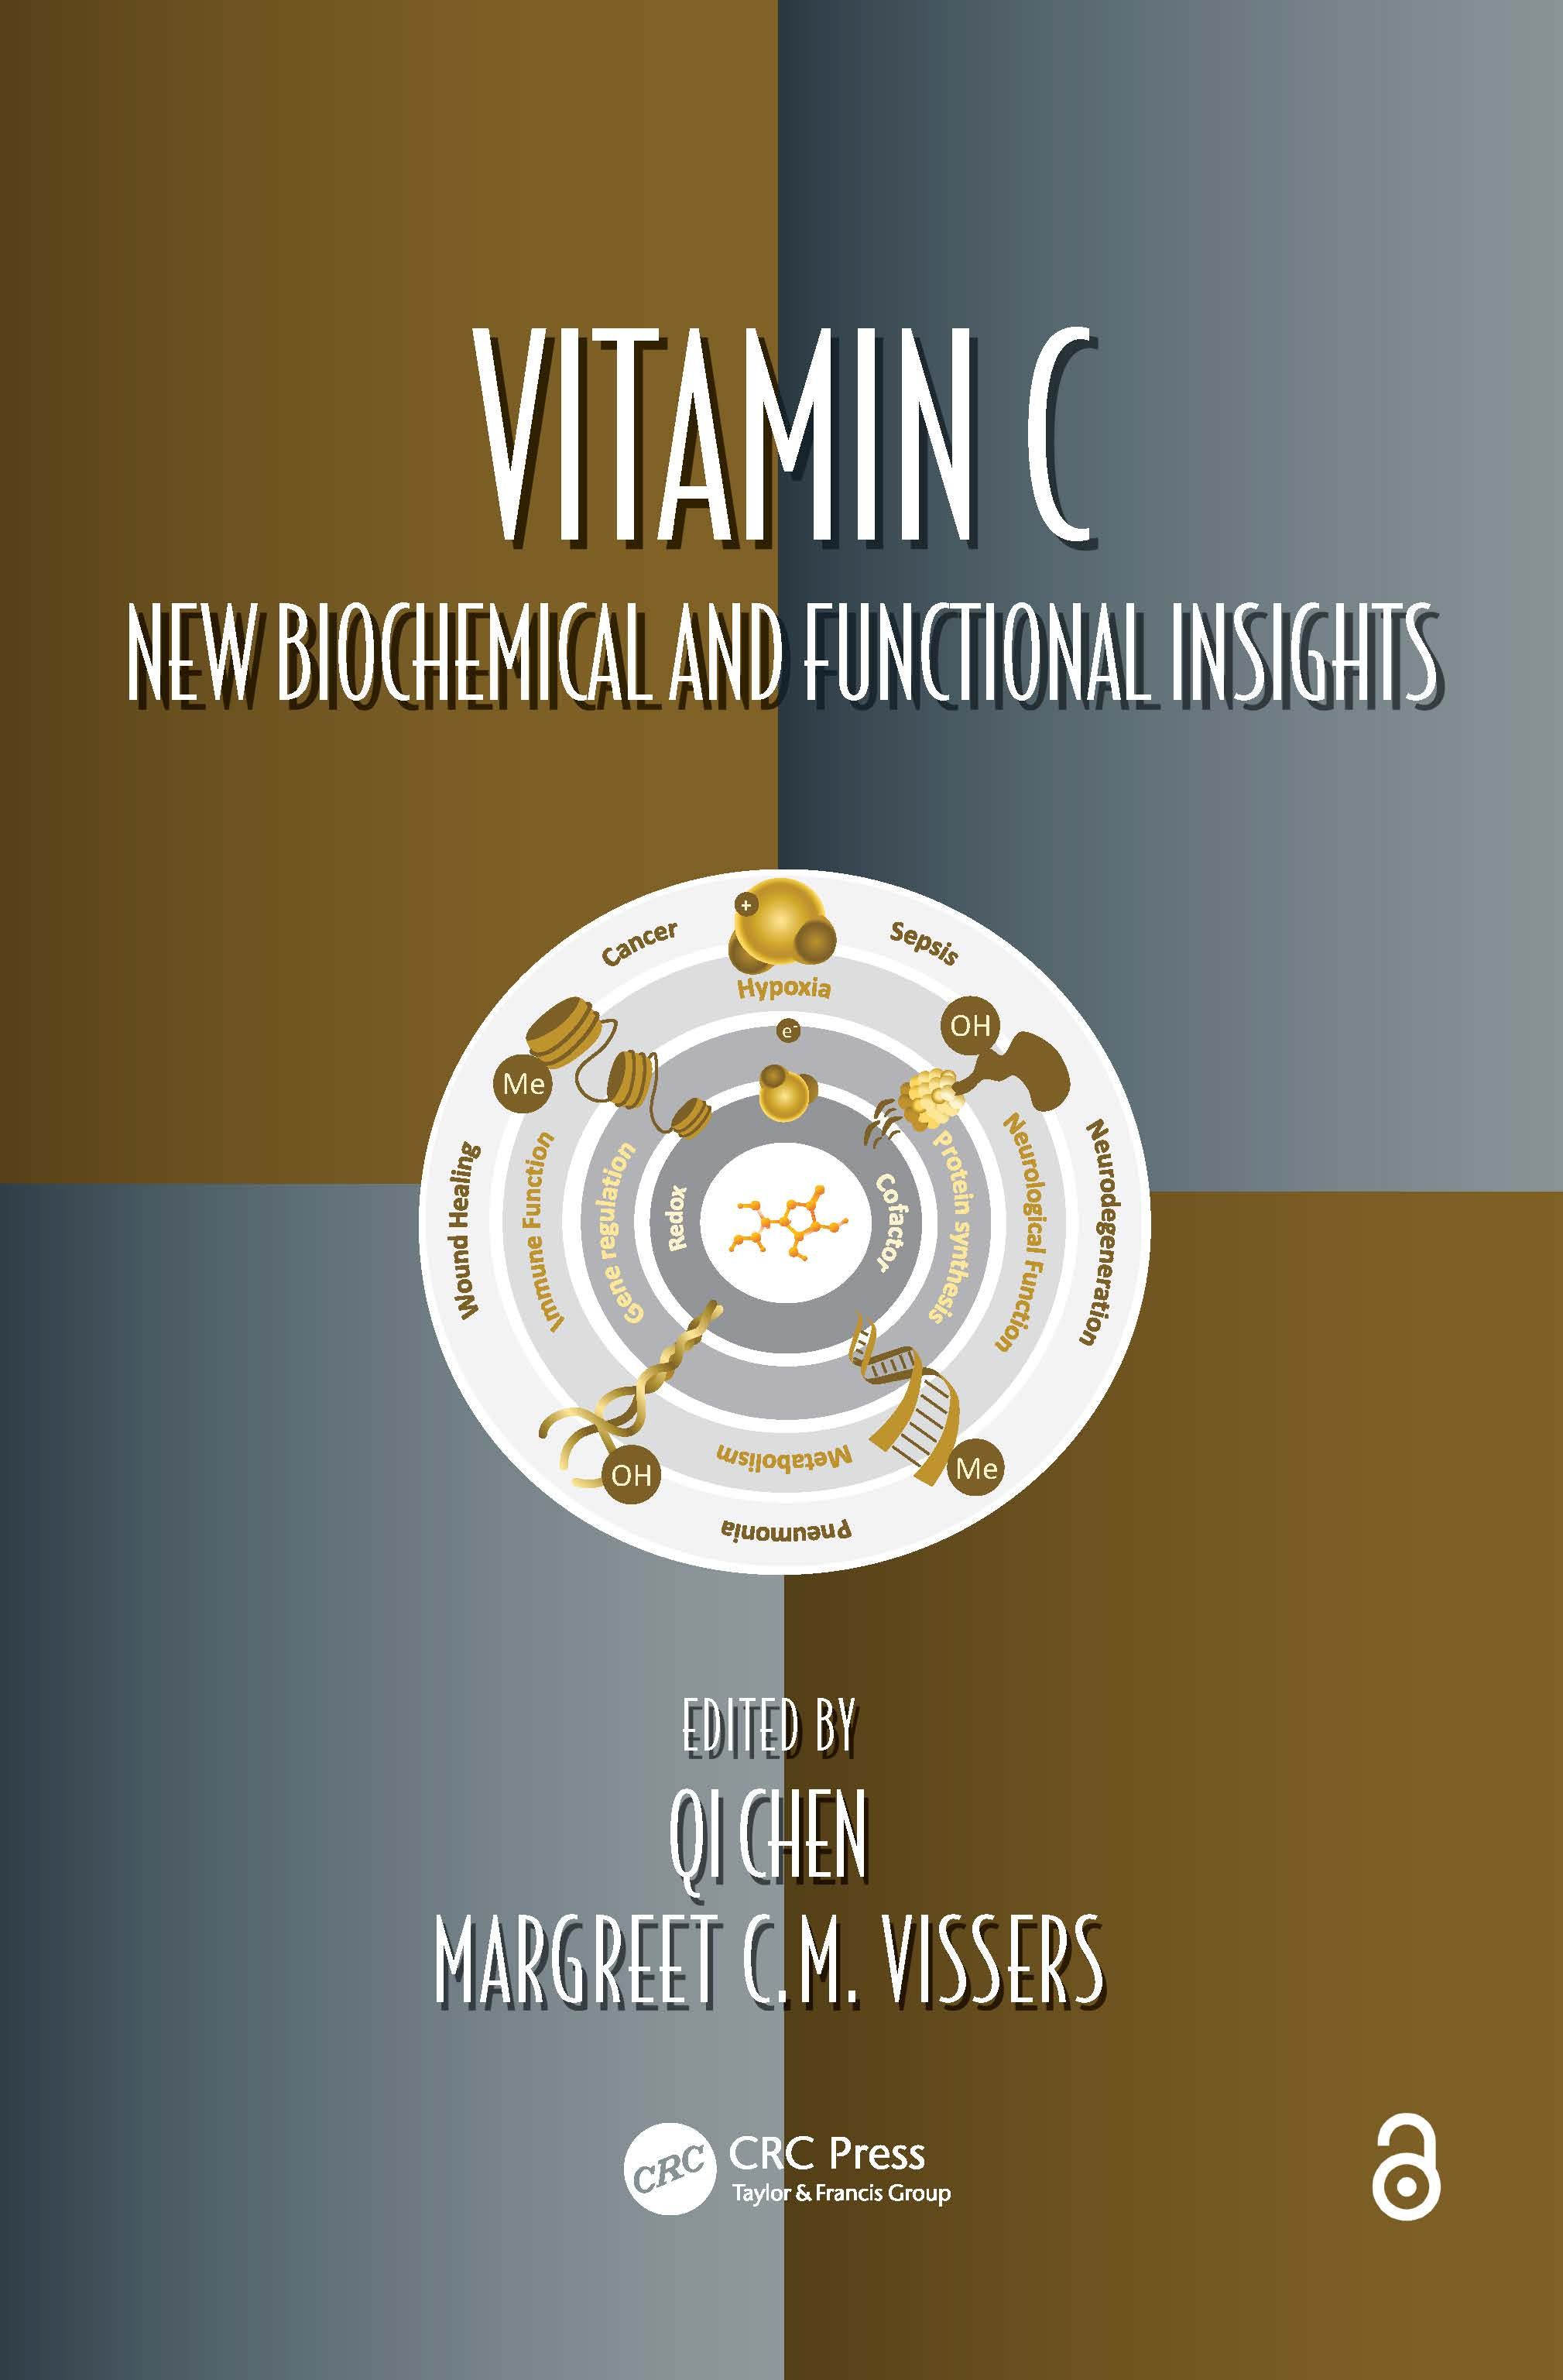 Vitamin C: New Biochemical and Functional Insights book cover